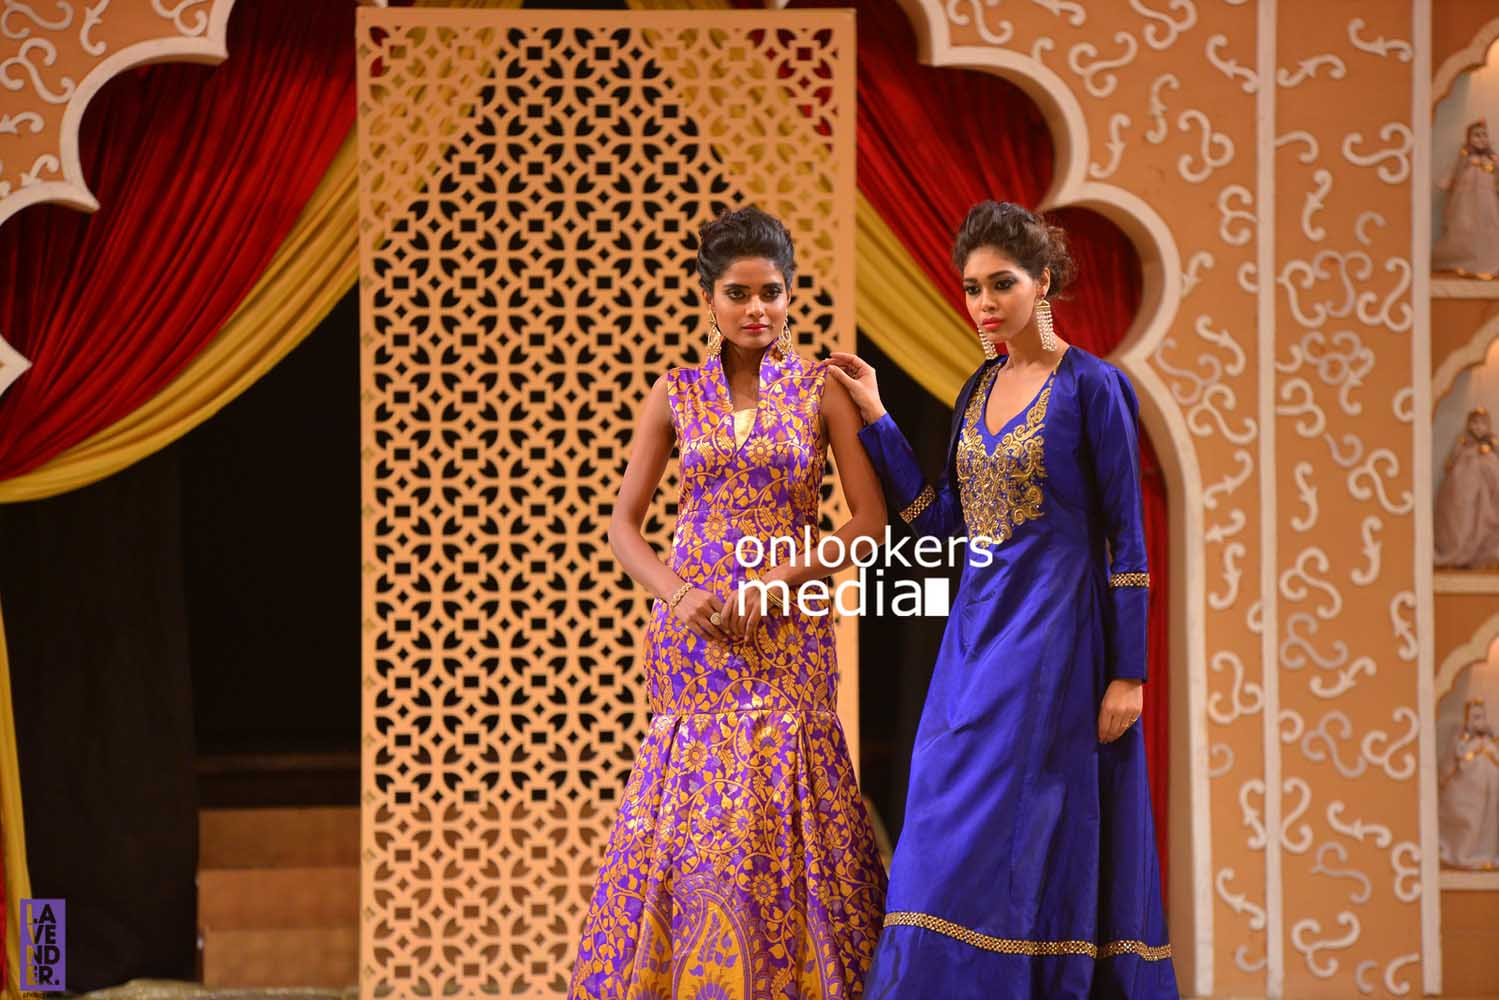 http://onlookersmedia.in/wp-content/uploads/2016/10/Beena-Kannan-Bridal-Show-2016-Stills-Photos-Seematti-128.jpg